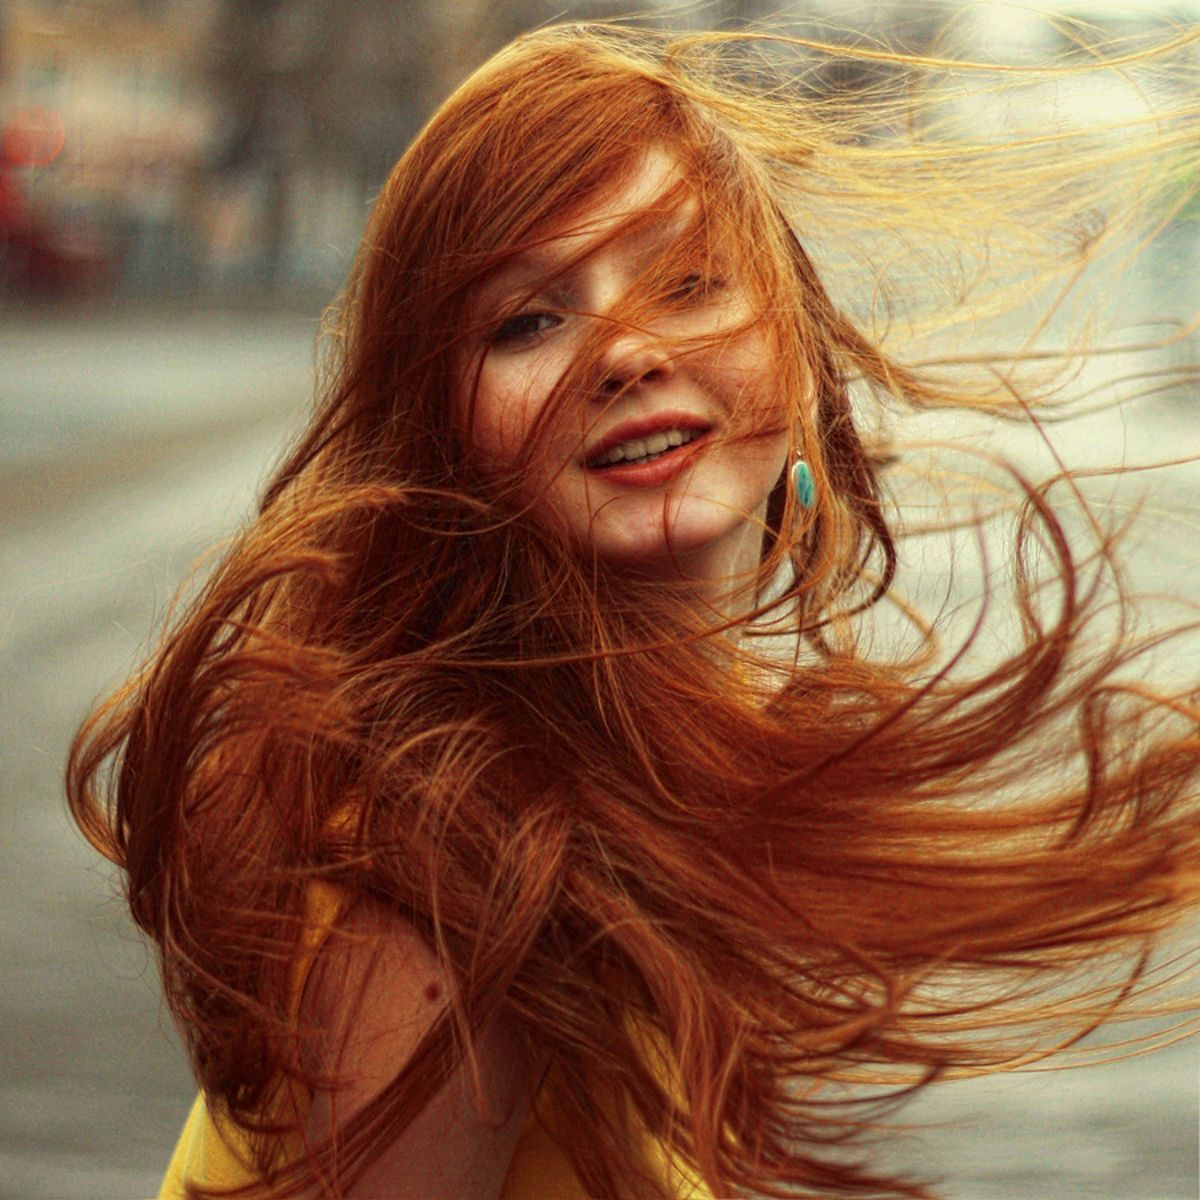 lots of red hair blowing in